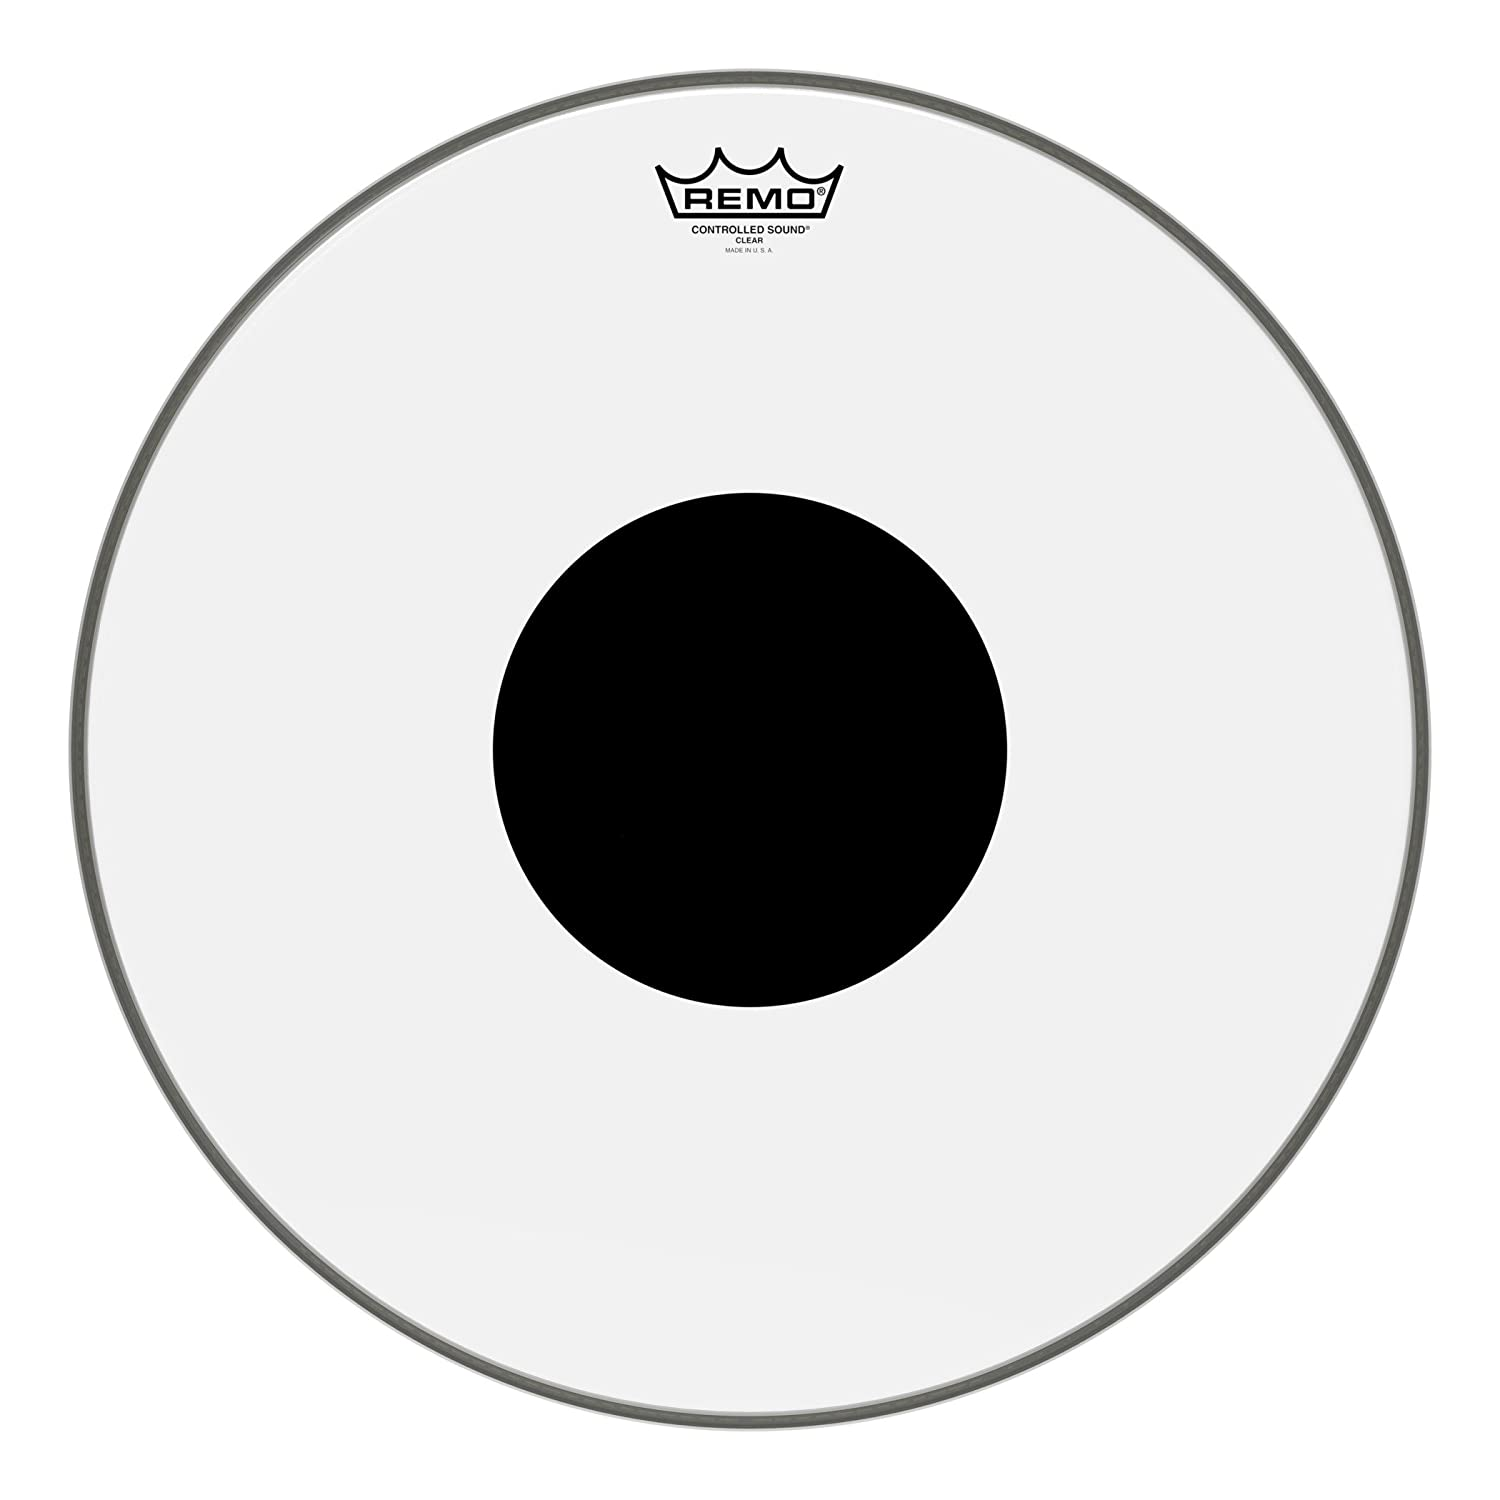 Remo Controlled Sound Clear Drum Head with Black Dot - 18 Inch 71Ro0-QCgBL